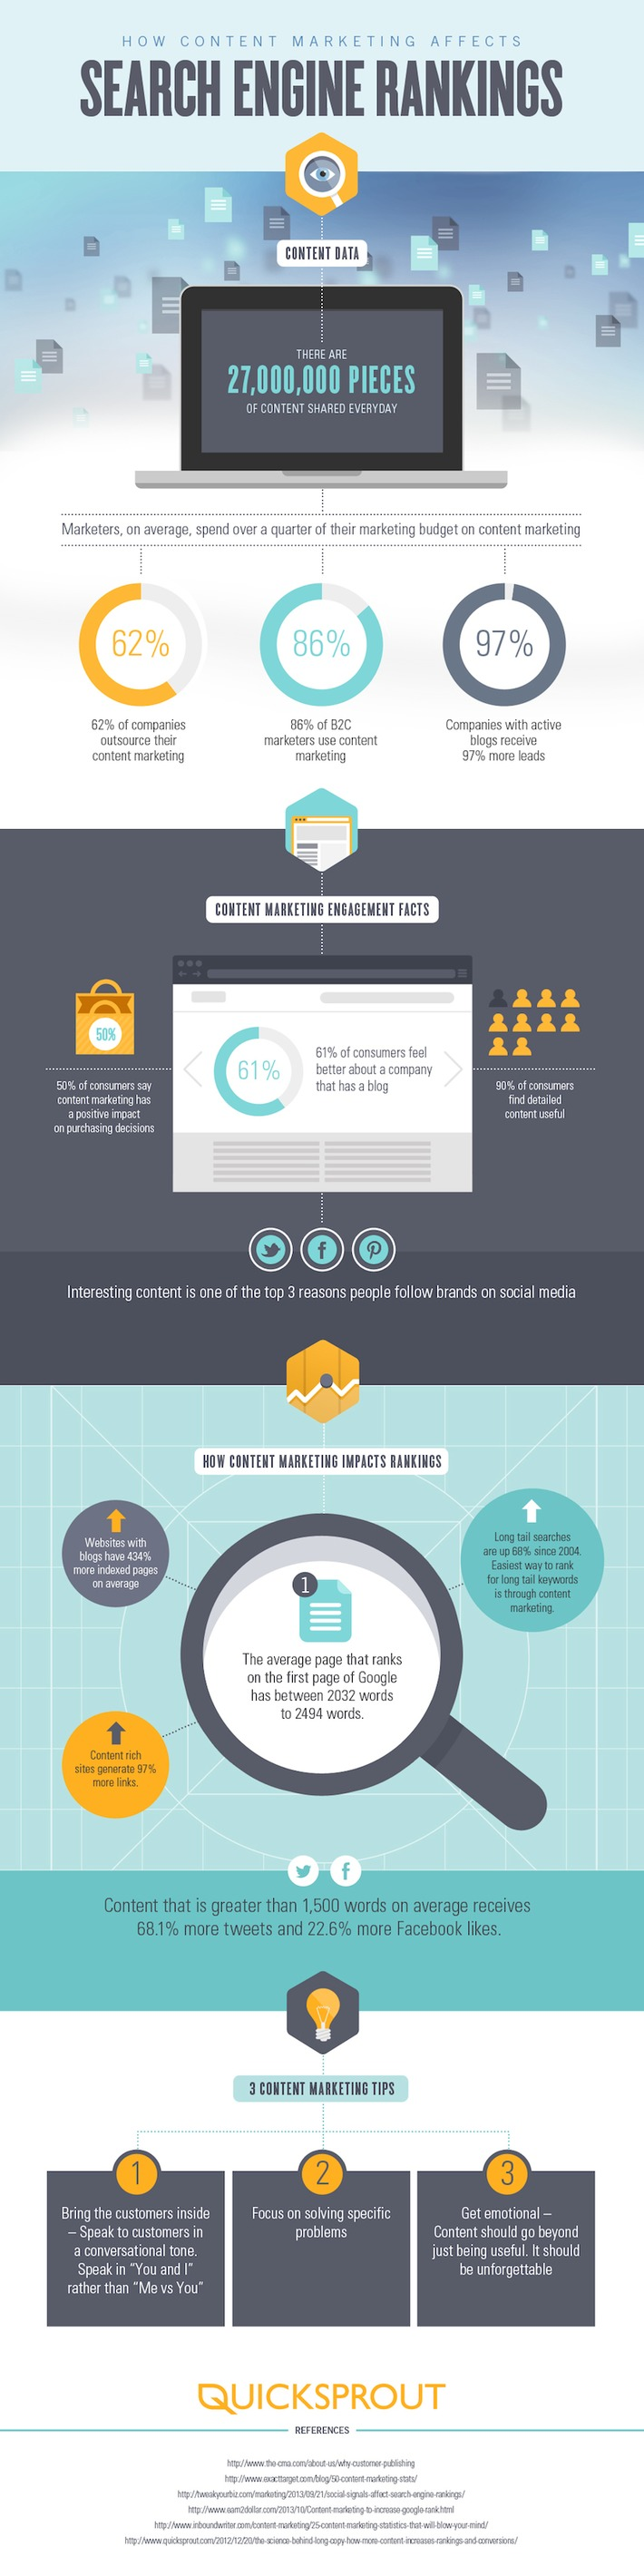 How Content Marketing Affects Search Engine Rankings [Infographic]   A Marketing Mix   Scoop.it